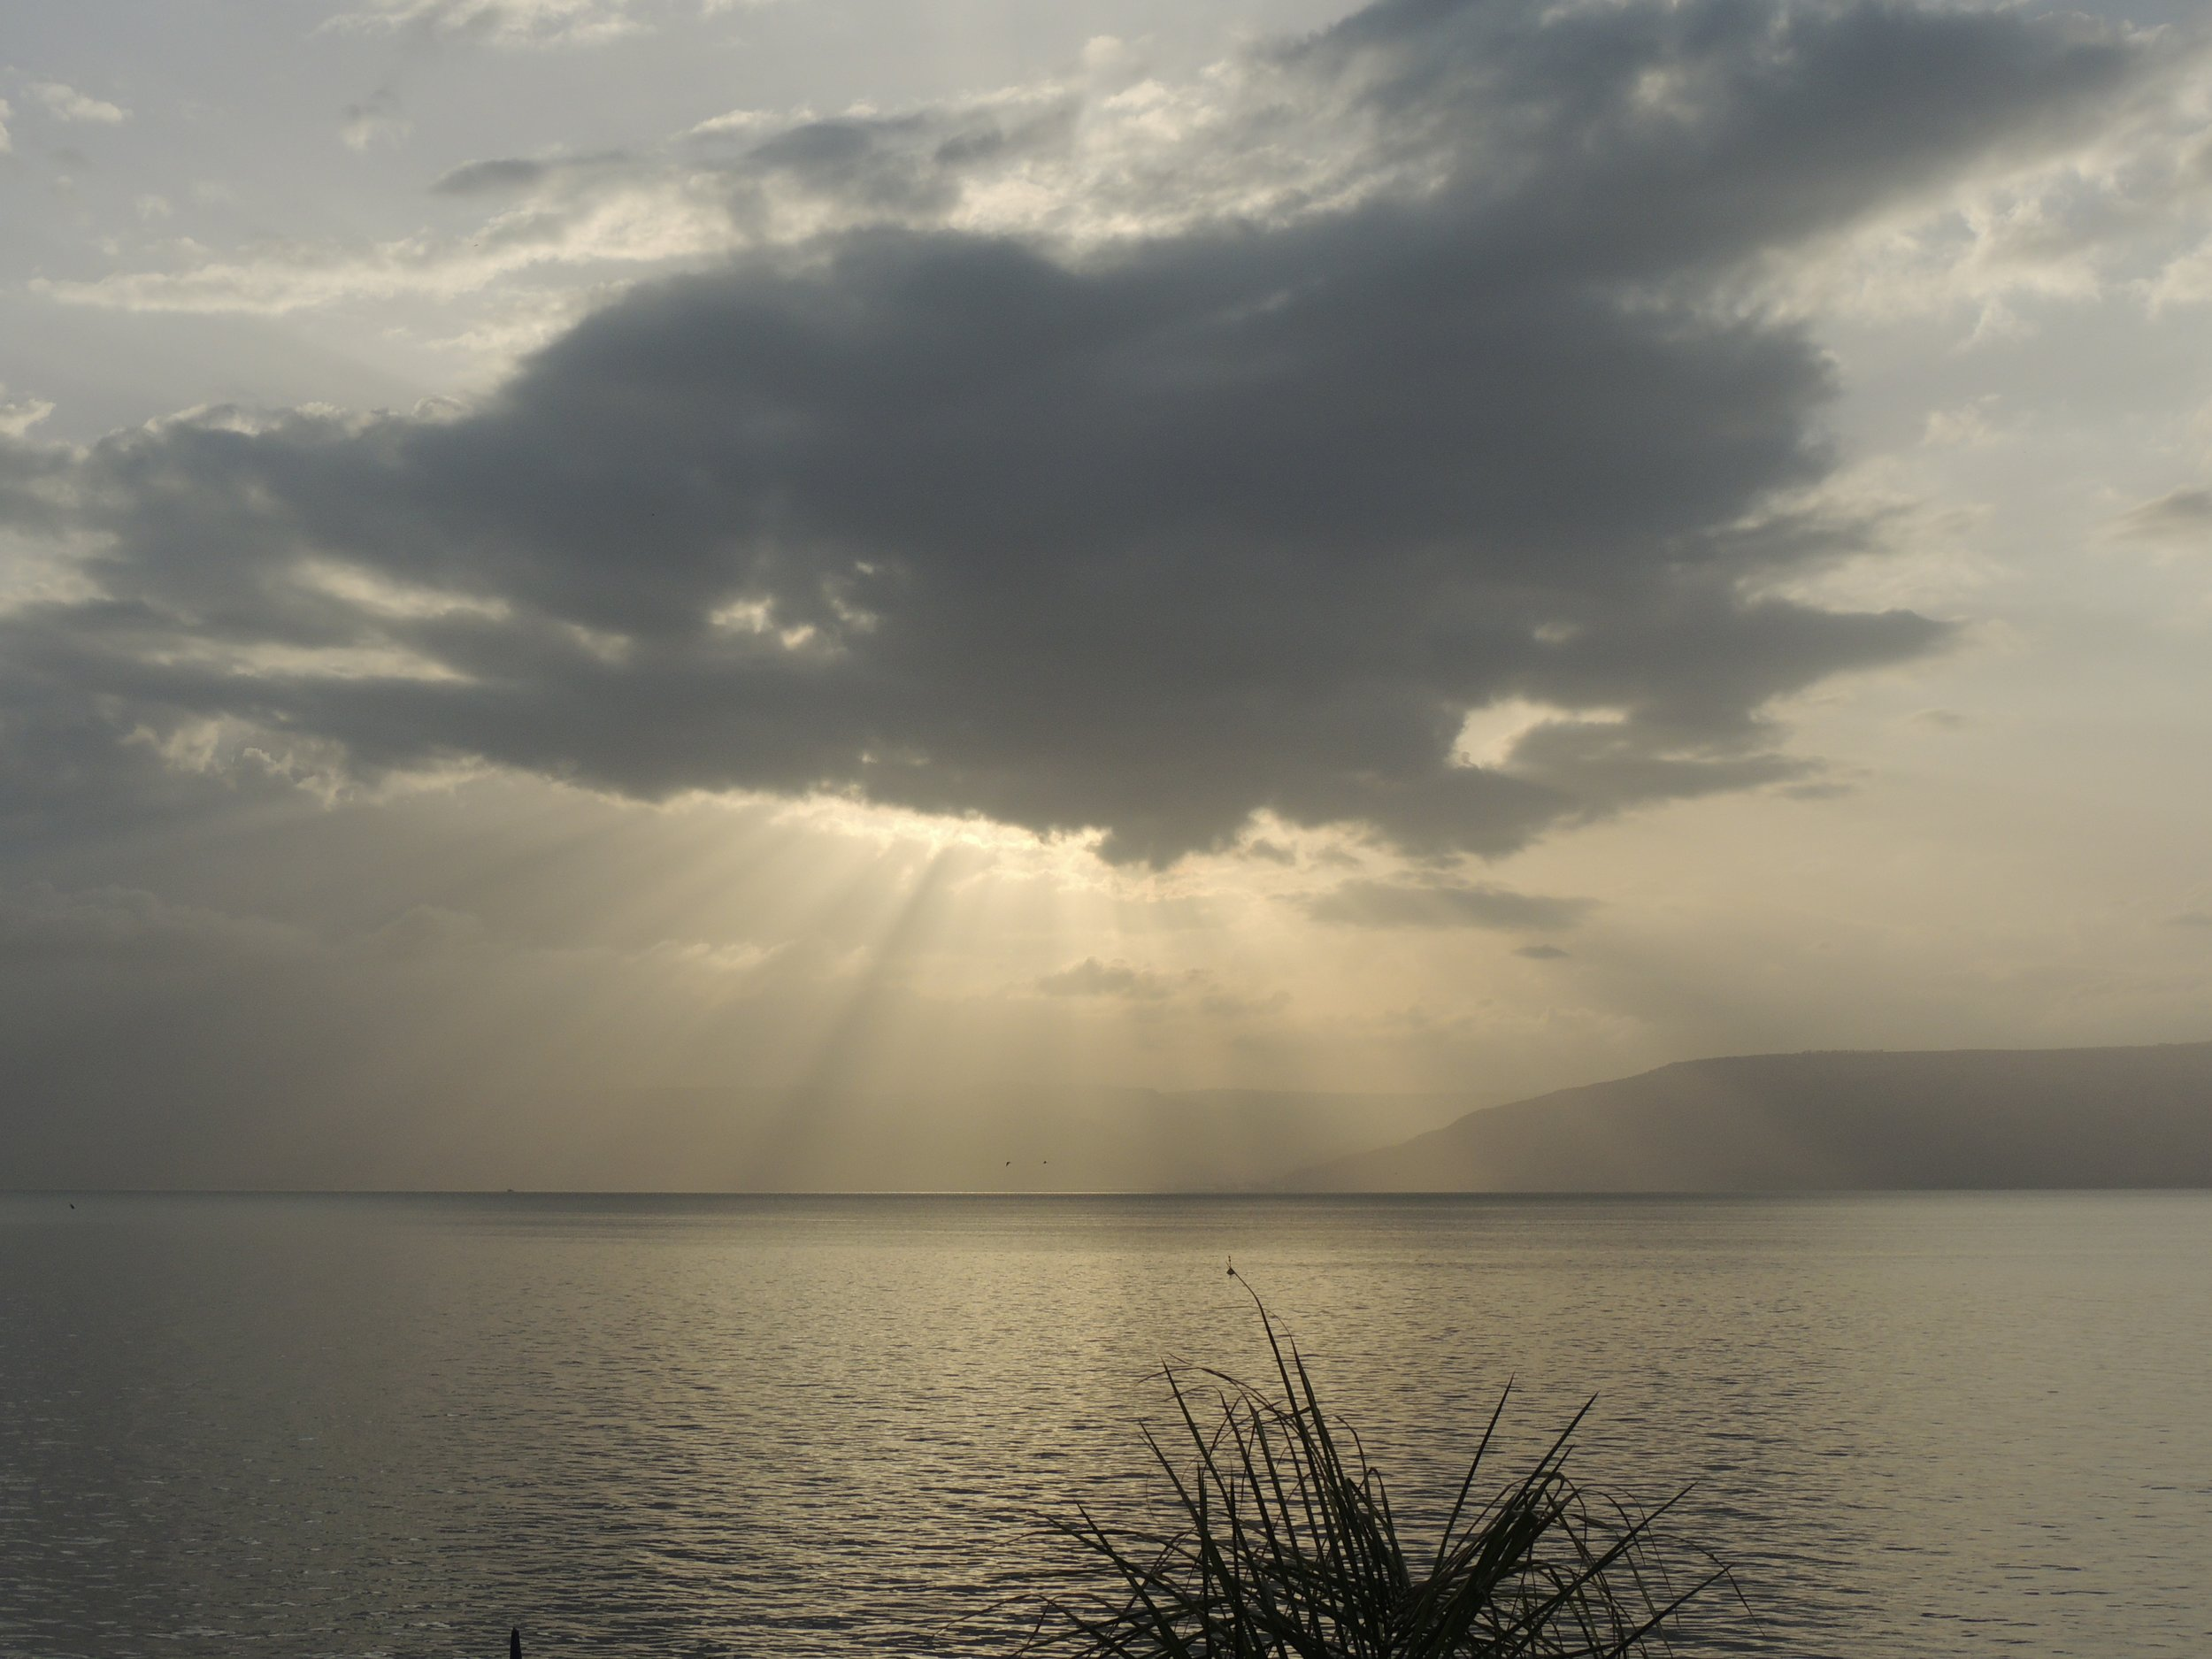 sea_of_galilee_sunrise.jpg